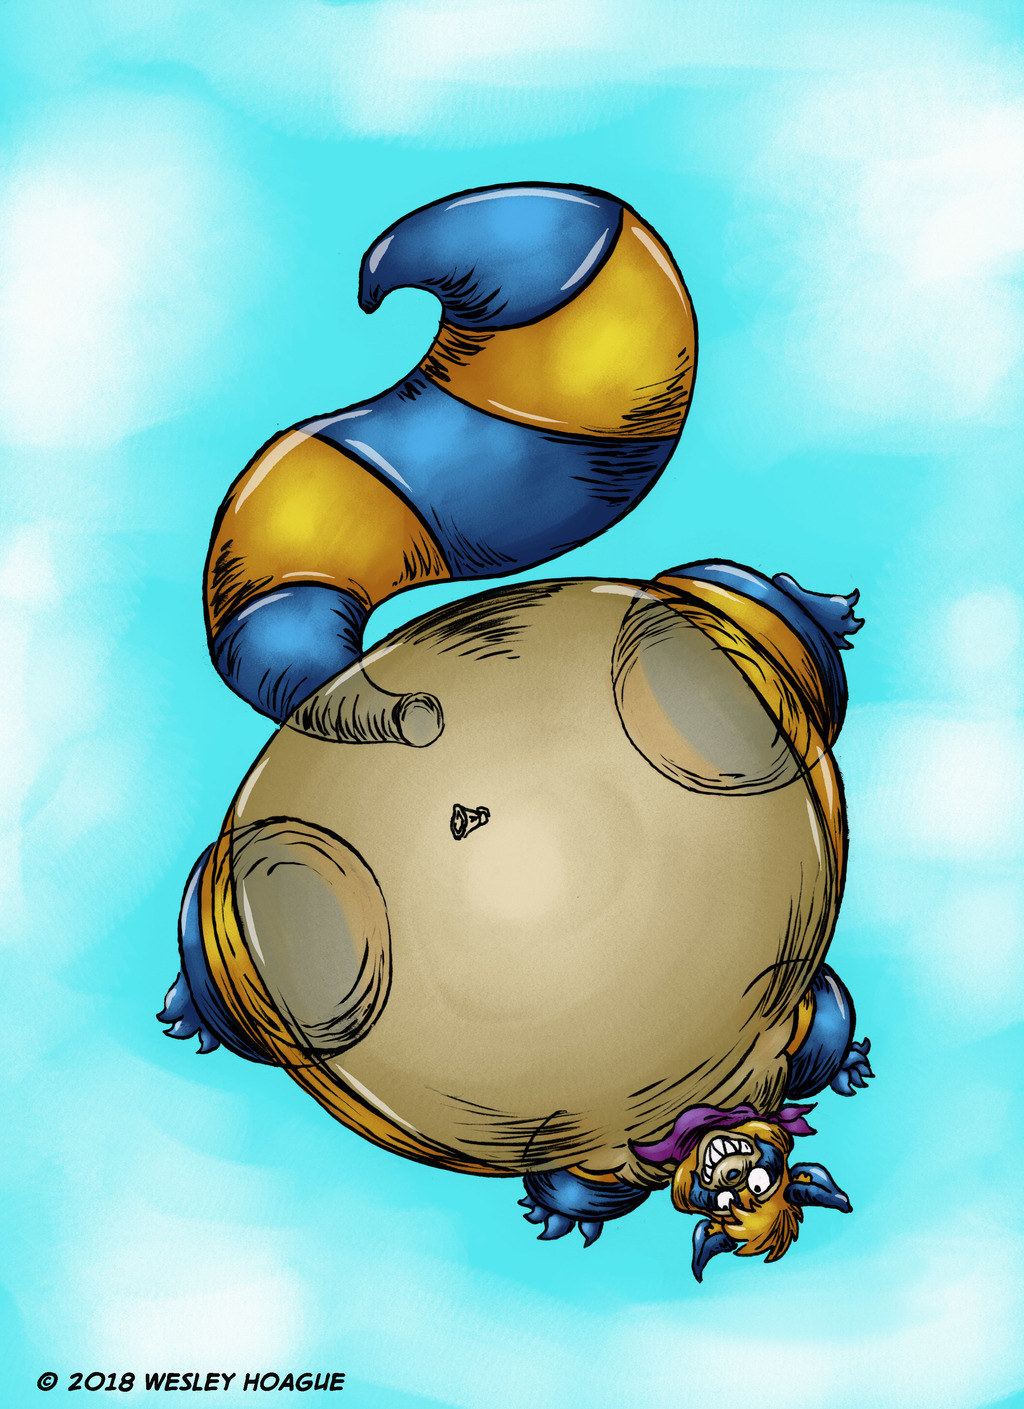 Most recent image: First inflation art yay!